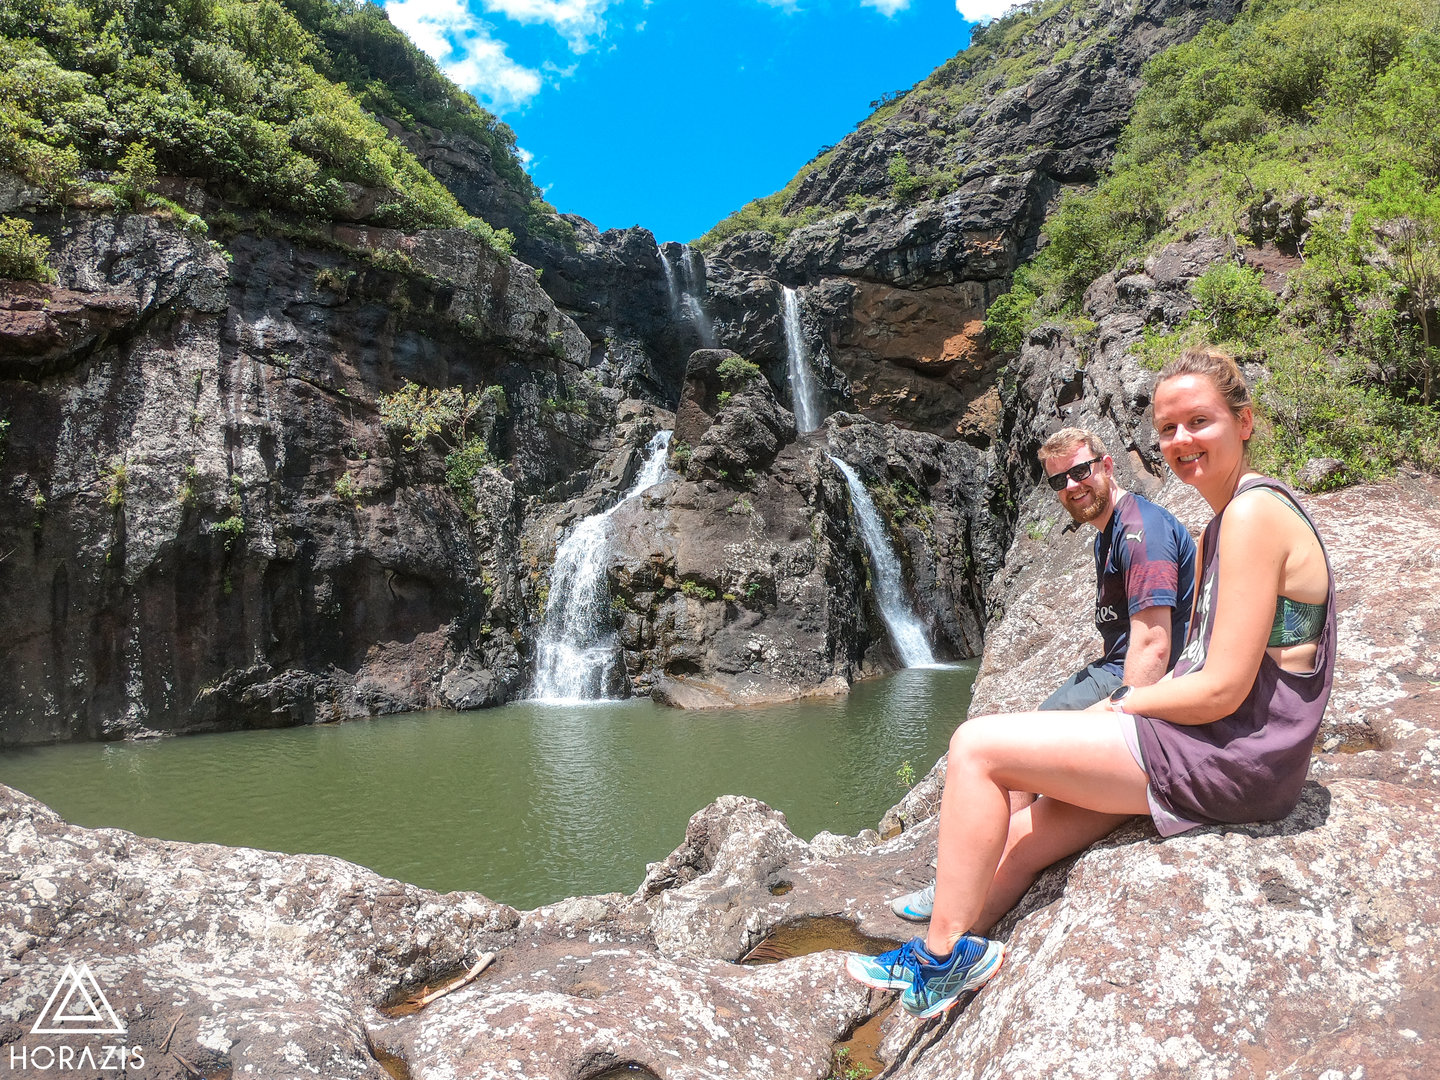 Hiking Tamarind Falls with Alexander & G